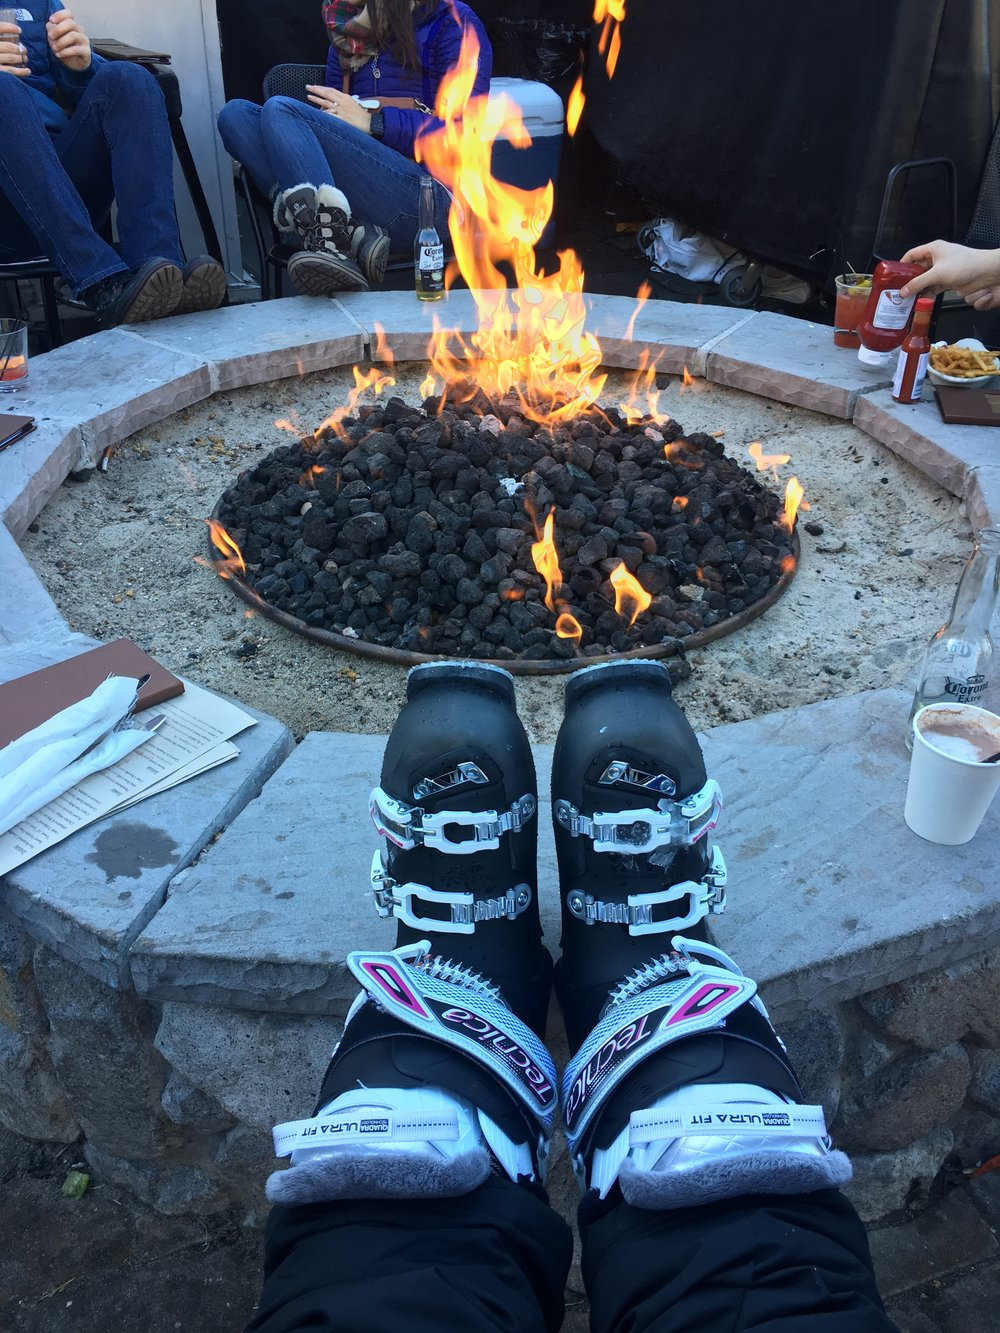 Ski boots at Gunbarrel in South Lake Tahoe, CA | Watson & Walls